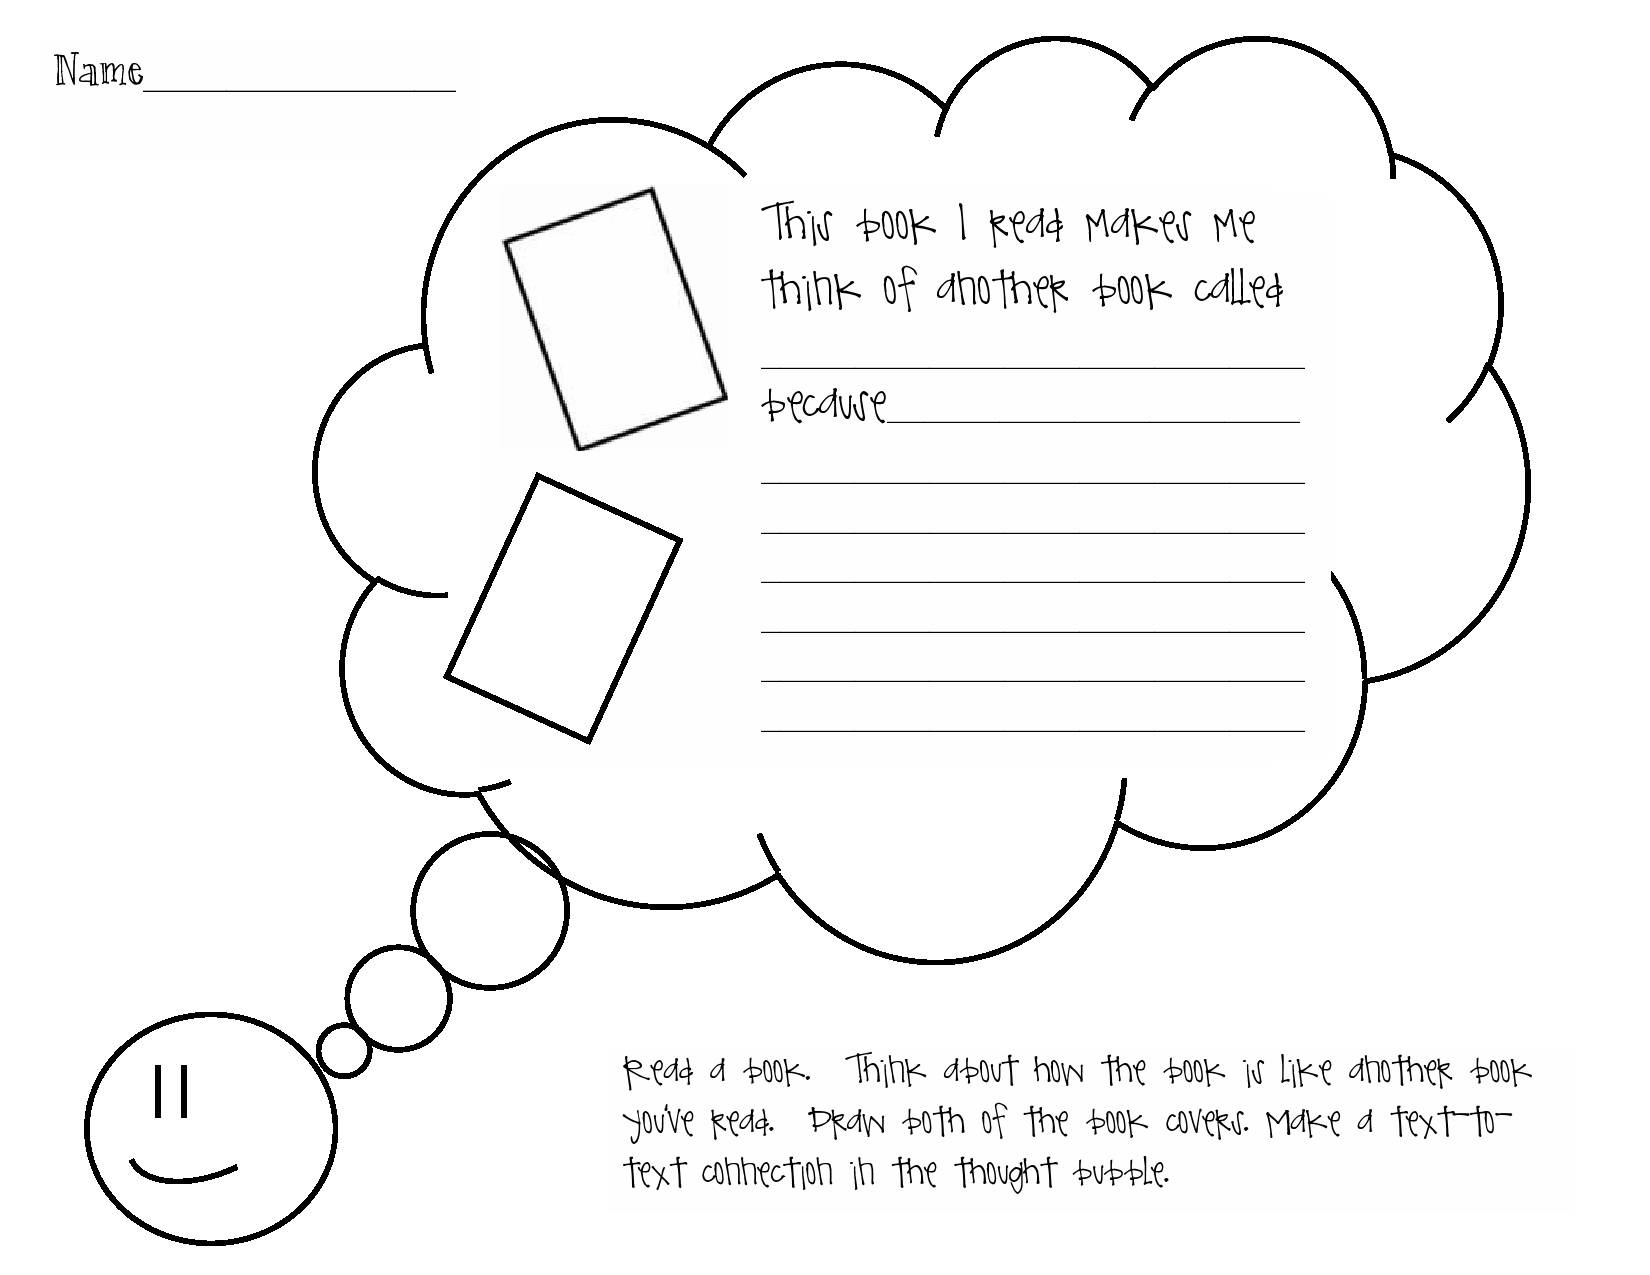 The Book Connection   Aphasia Center of California   Aphasia Center moreover The Boy Who Cried Wolf  Making Text Connections   Worksheet in addition Science and Children  Online Connections besides Making Connections   Super Six  prehension Strategies moreover Text To Text  Text To Self  And Text To World Connections Teaching as well Science and Children  Online Connections together with  besides Teaching Strategy  Text to Text  Text to Self  Text to World further Annotating a Text   Hunter College further Text to Text Connections Worksheet Cute Text Connections Self Text also Making Connections  text to text  text to self  text to world likewise Making Connections as well Text to Self Connection Worksheet     Pinterest   Reading moreover Making Connections likewise Text to world   thegototeacher additionally Text to Text Connections Worksheet Cute Text Connections Self Text. on text to world connections worksheet